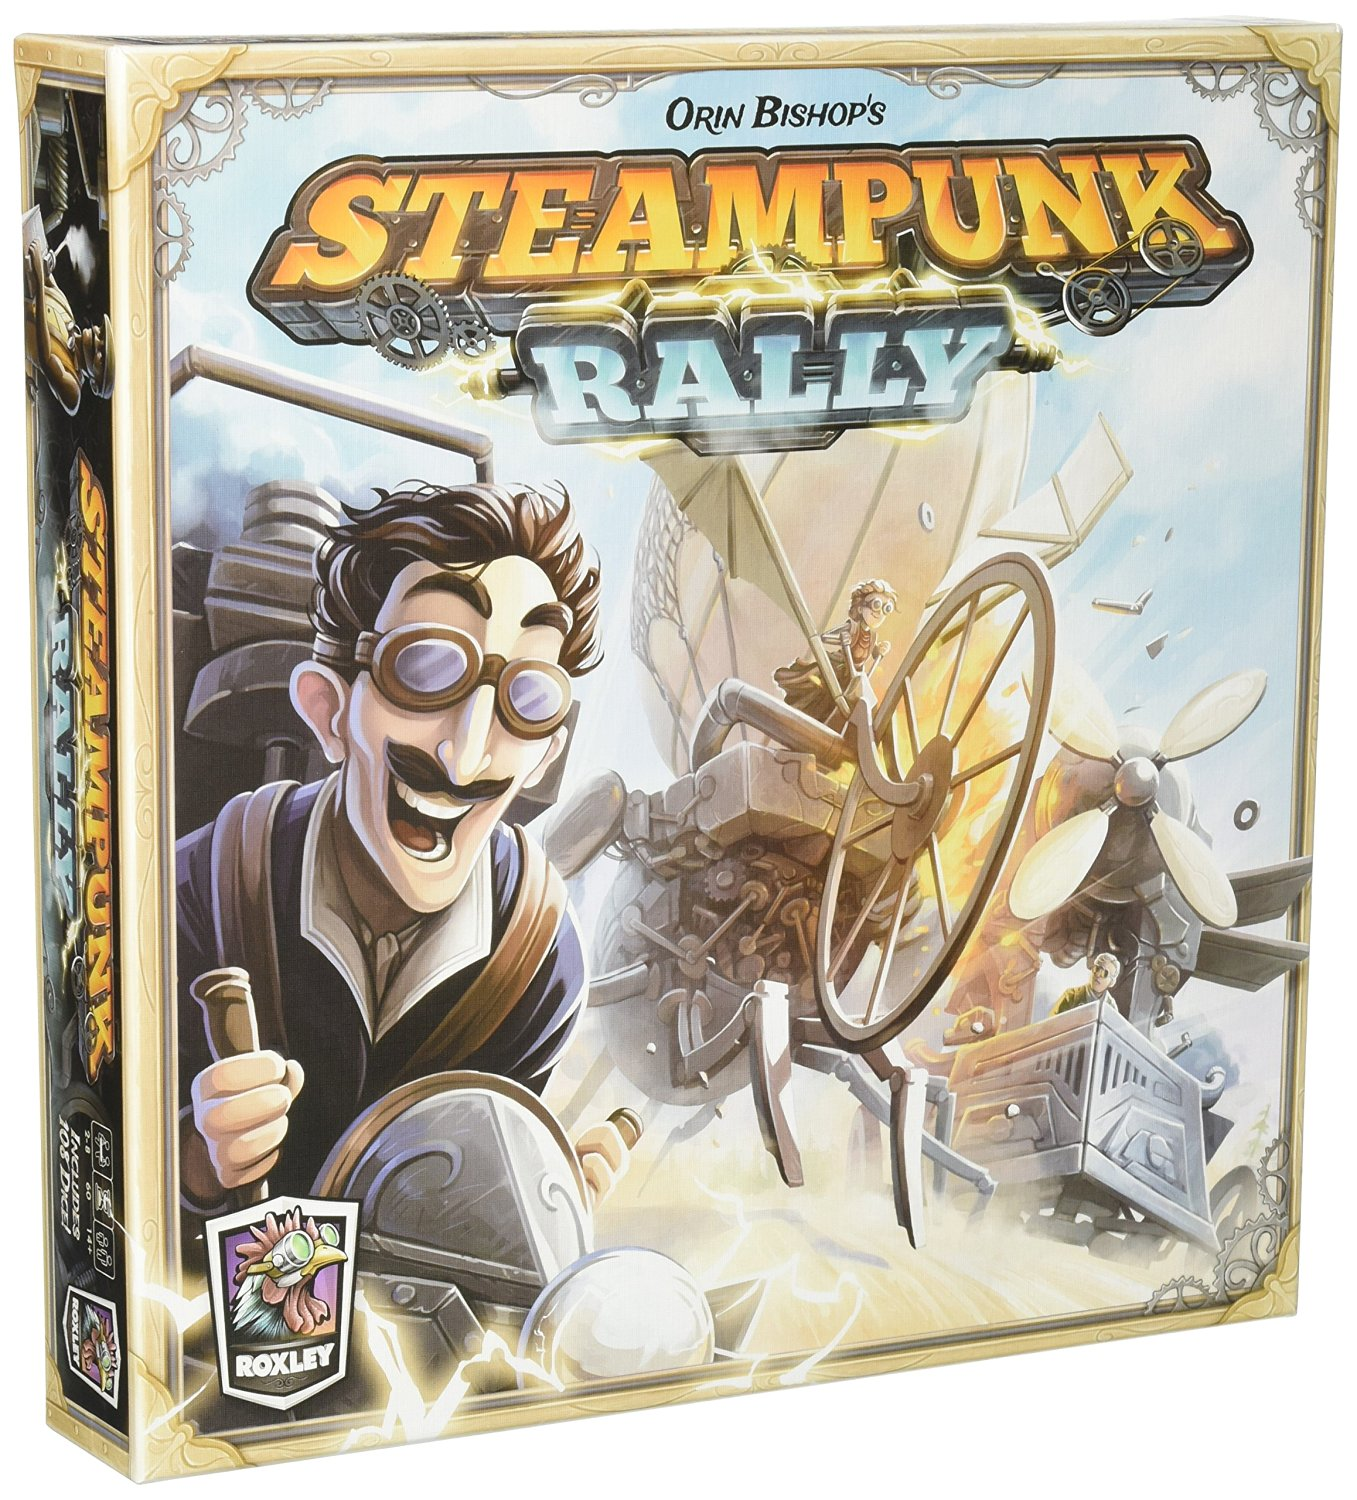 Steampunk Games & Game Accessories for Him, Her or Them